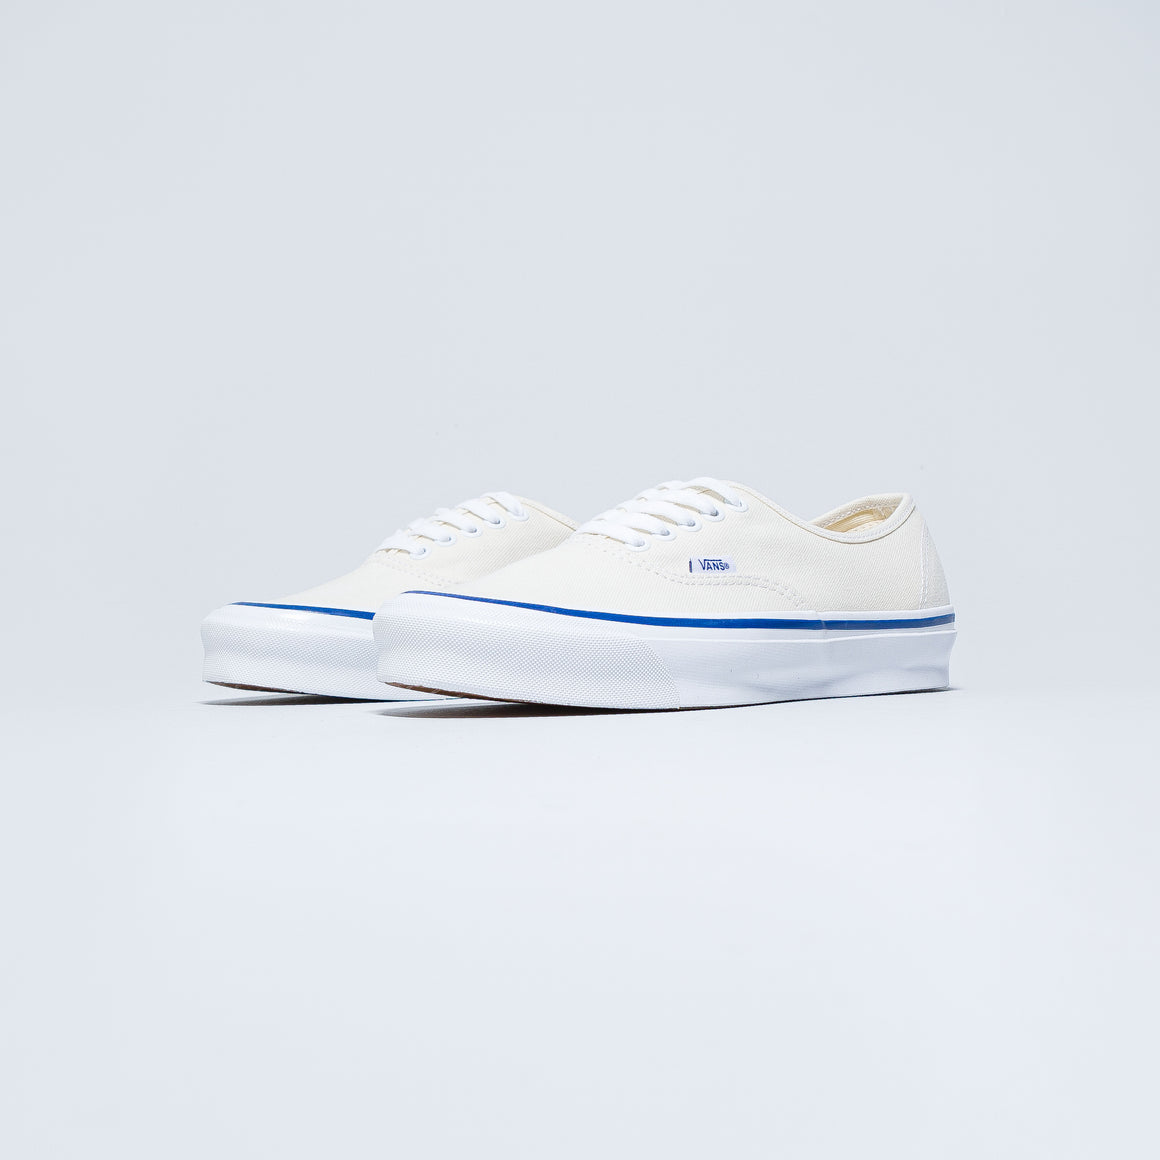 Vans - OG Authentic LX - Classic White - Up There